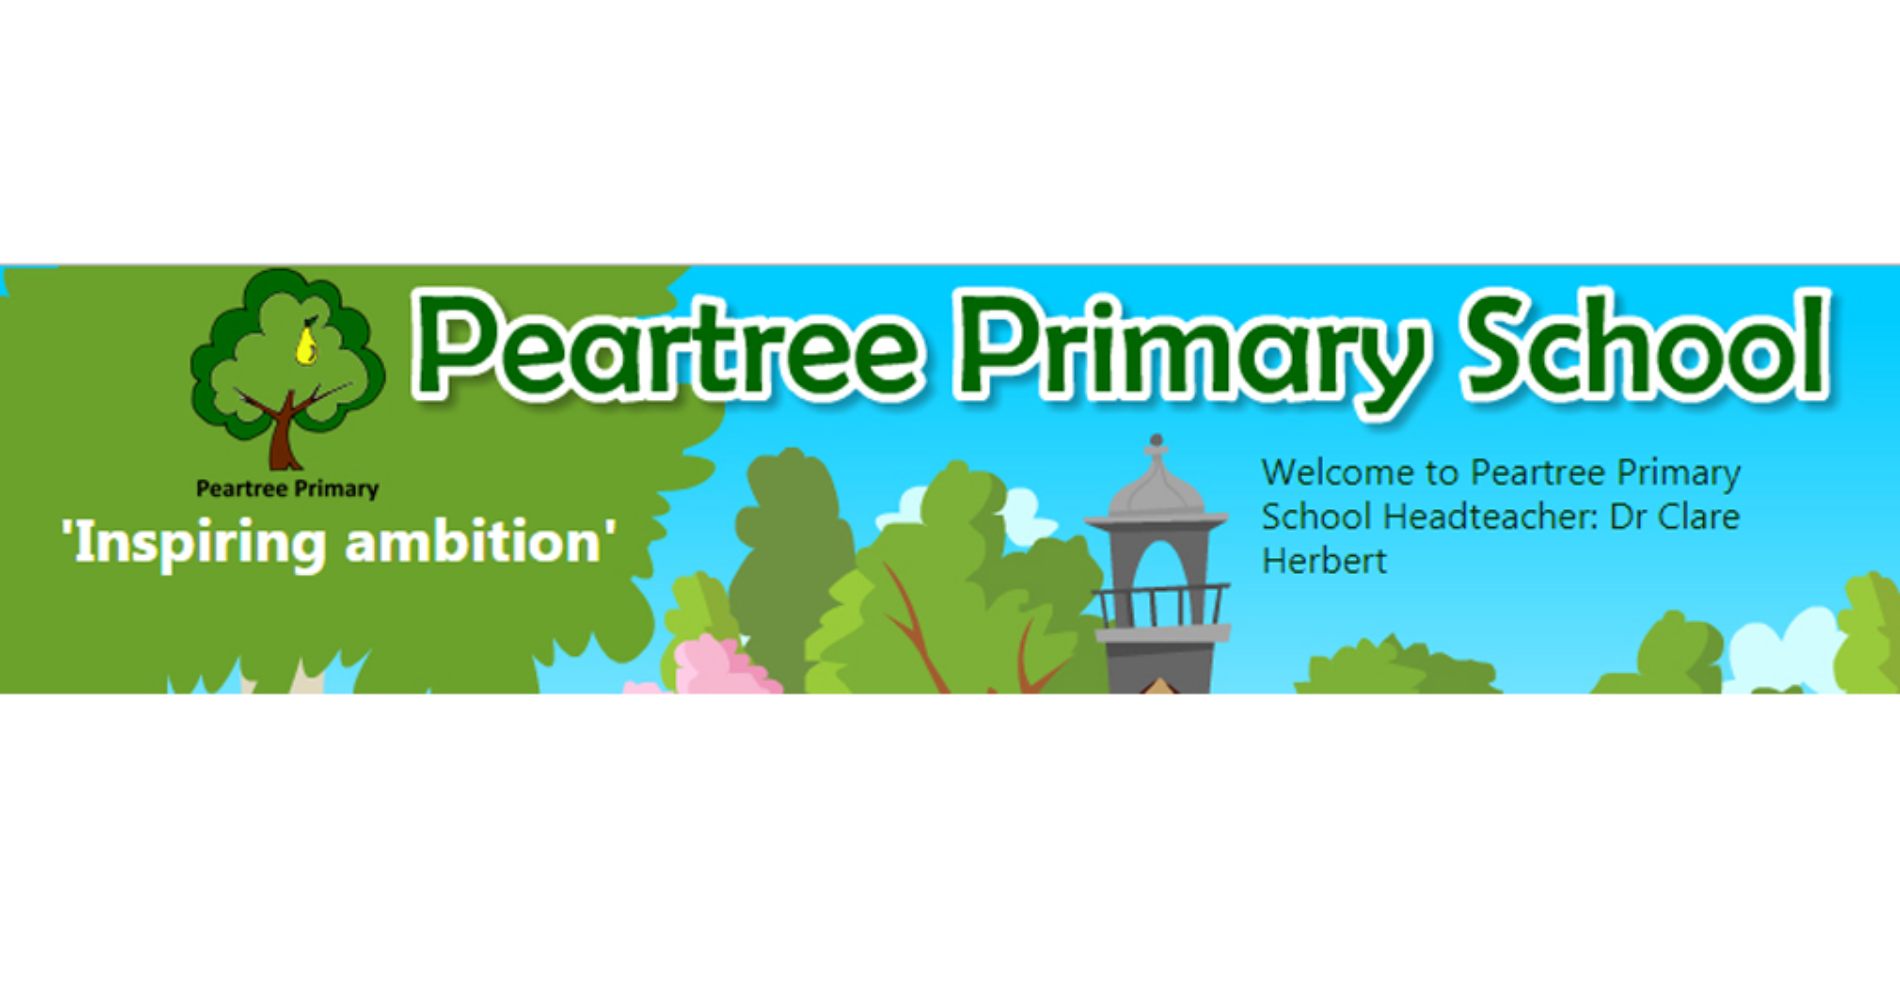 Peartree Primary School